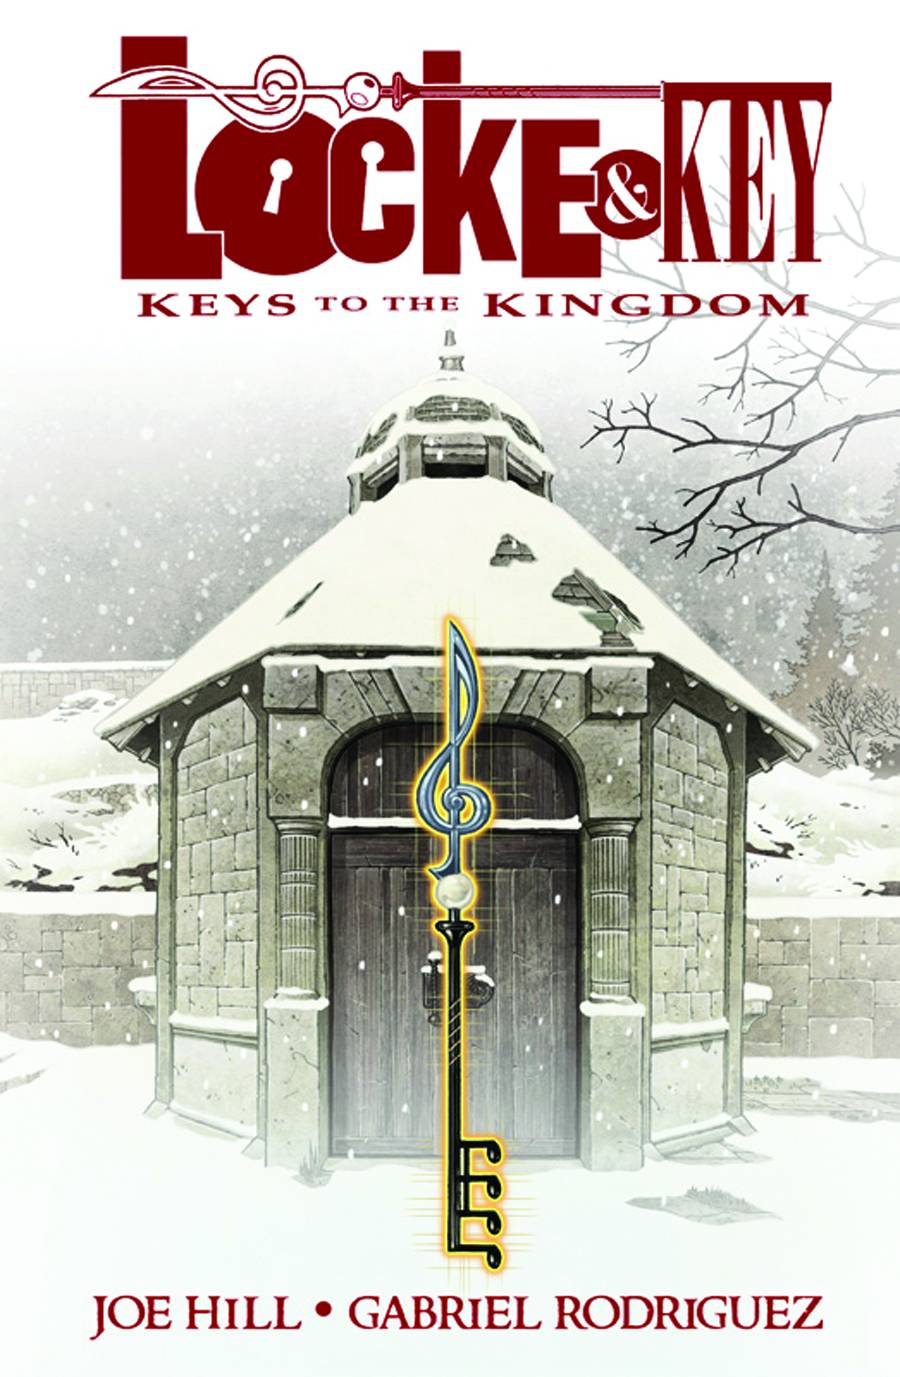 LOCKE & KEY HC VOL 04 KEYS TO THE KINGDOM